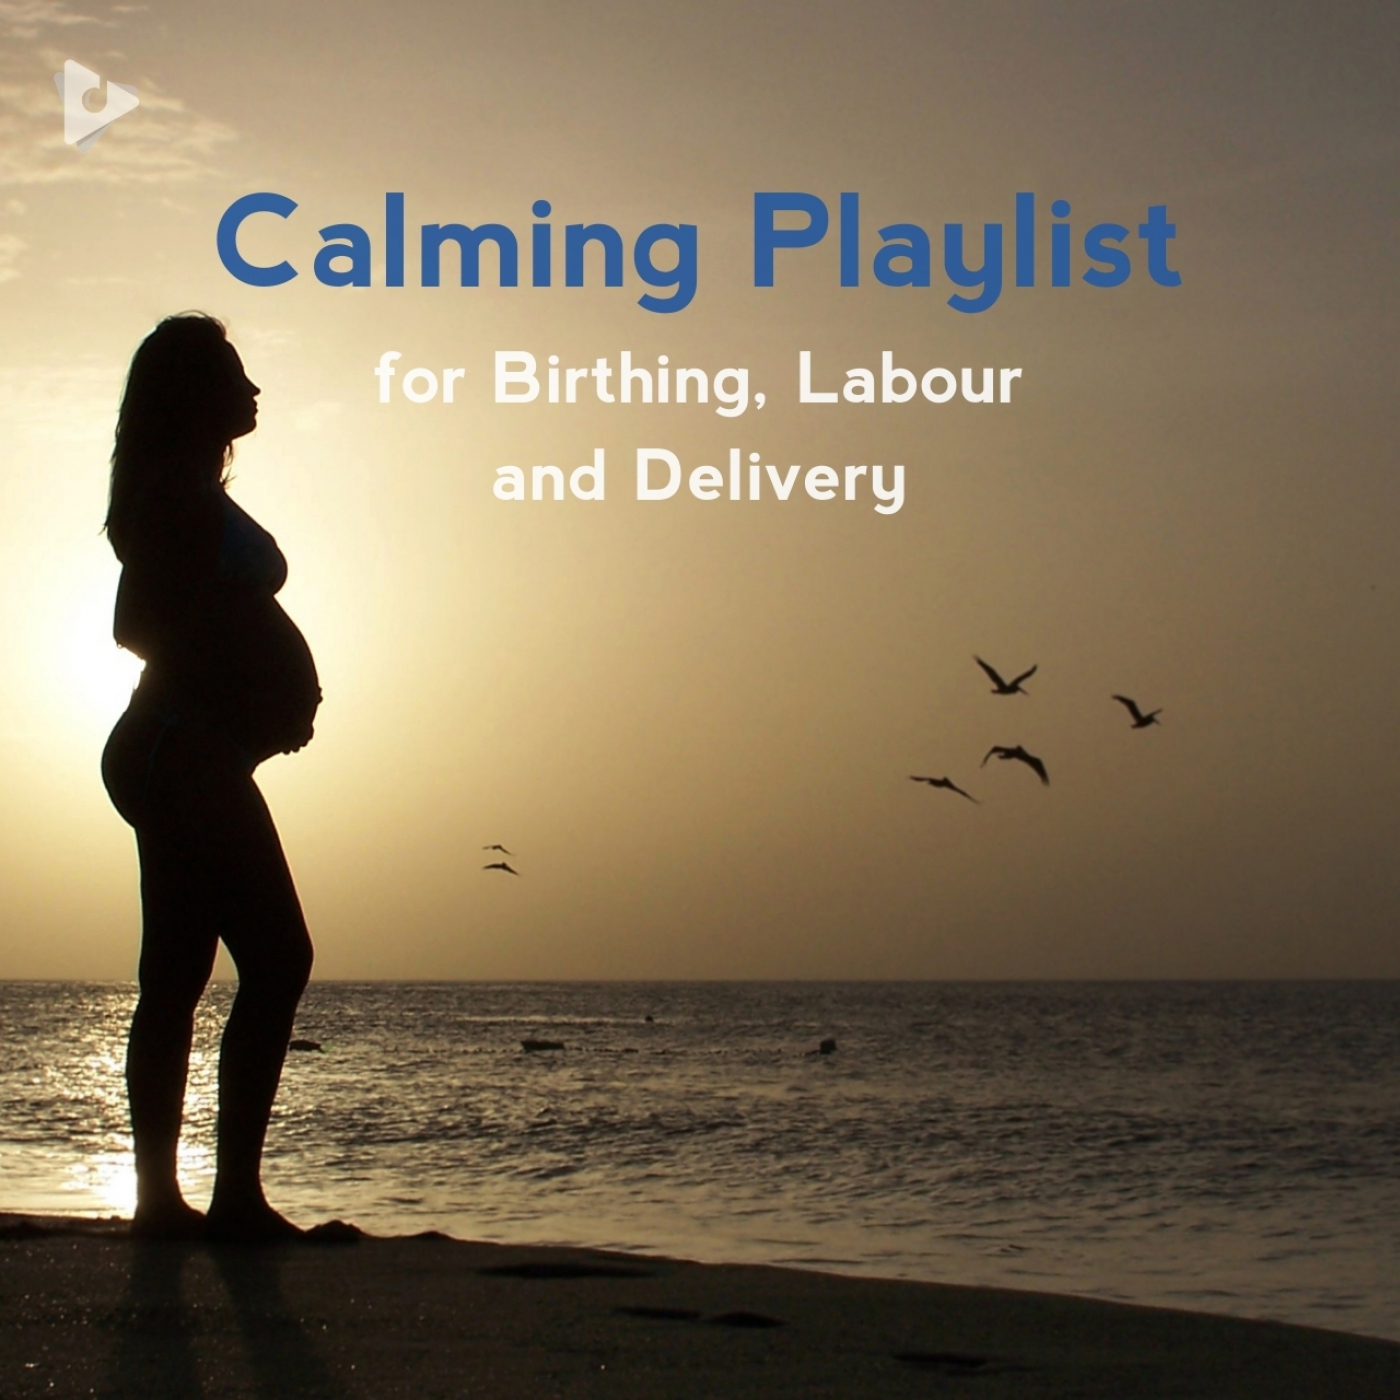 Calming Playlist for Birthing, Labour and Delivery